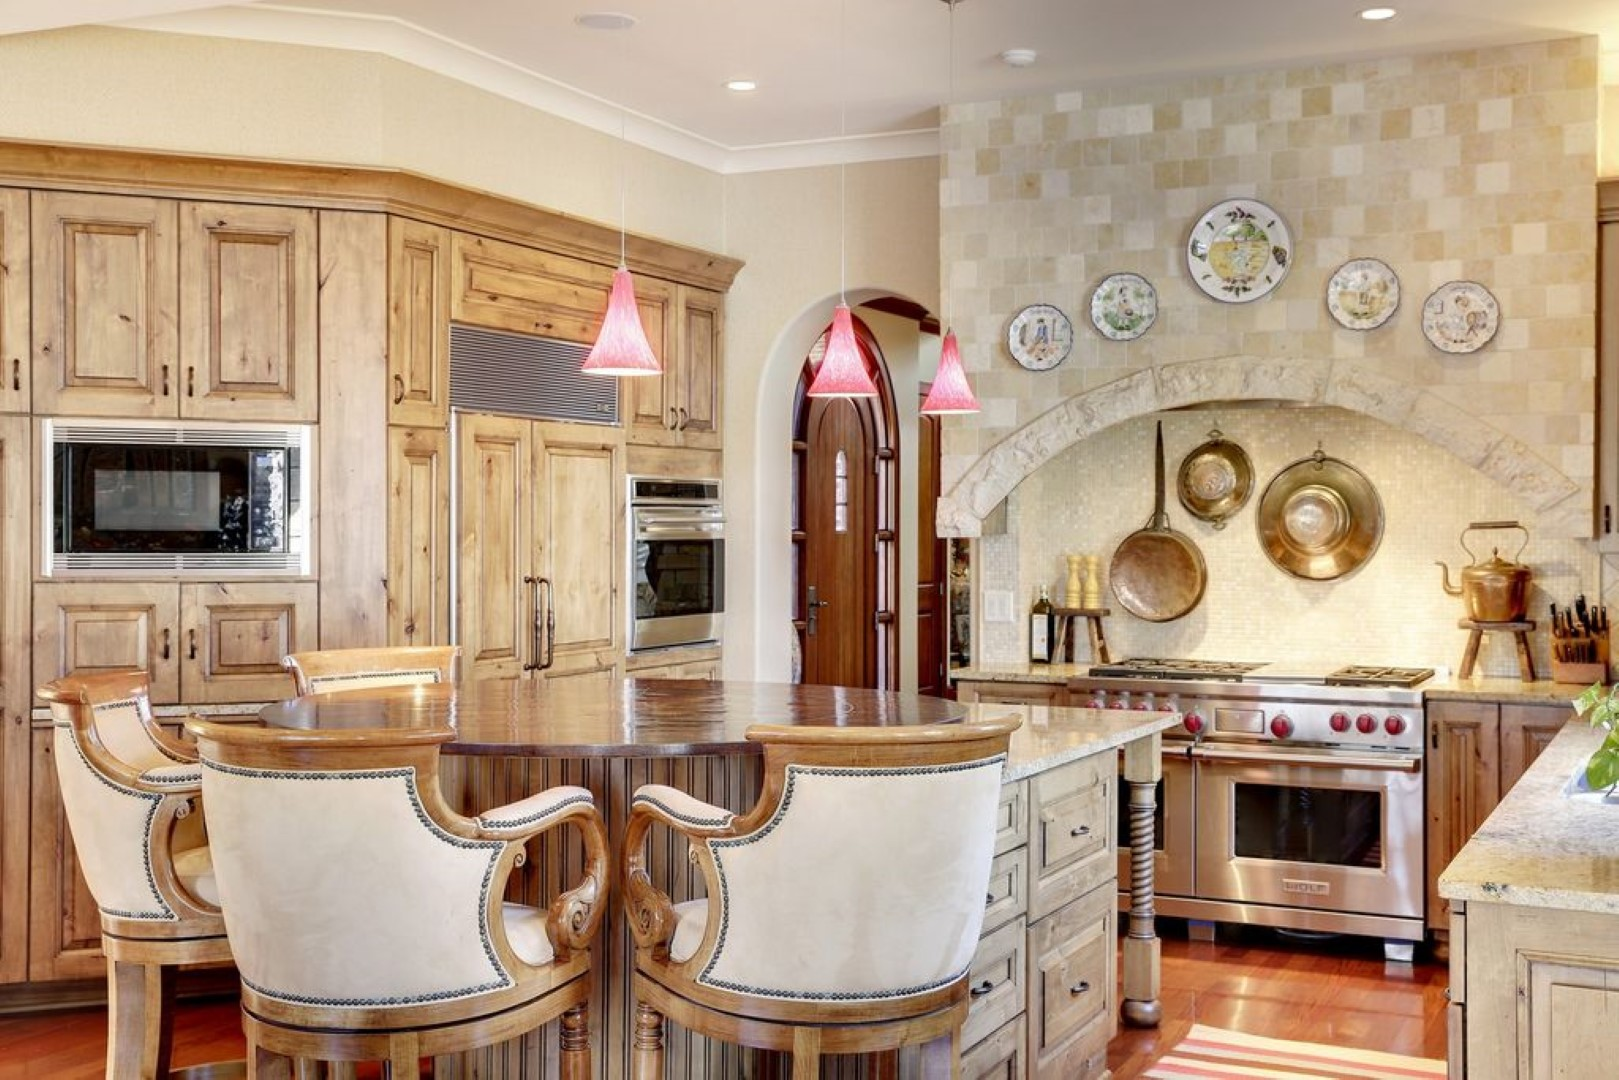 A Kitchen Remodel Is One Of The Best Investments You Can Make To Increase  The Value Of Your Home. From Everyday Use To Special Entertaining, Your  Kitchen ...